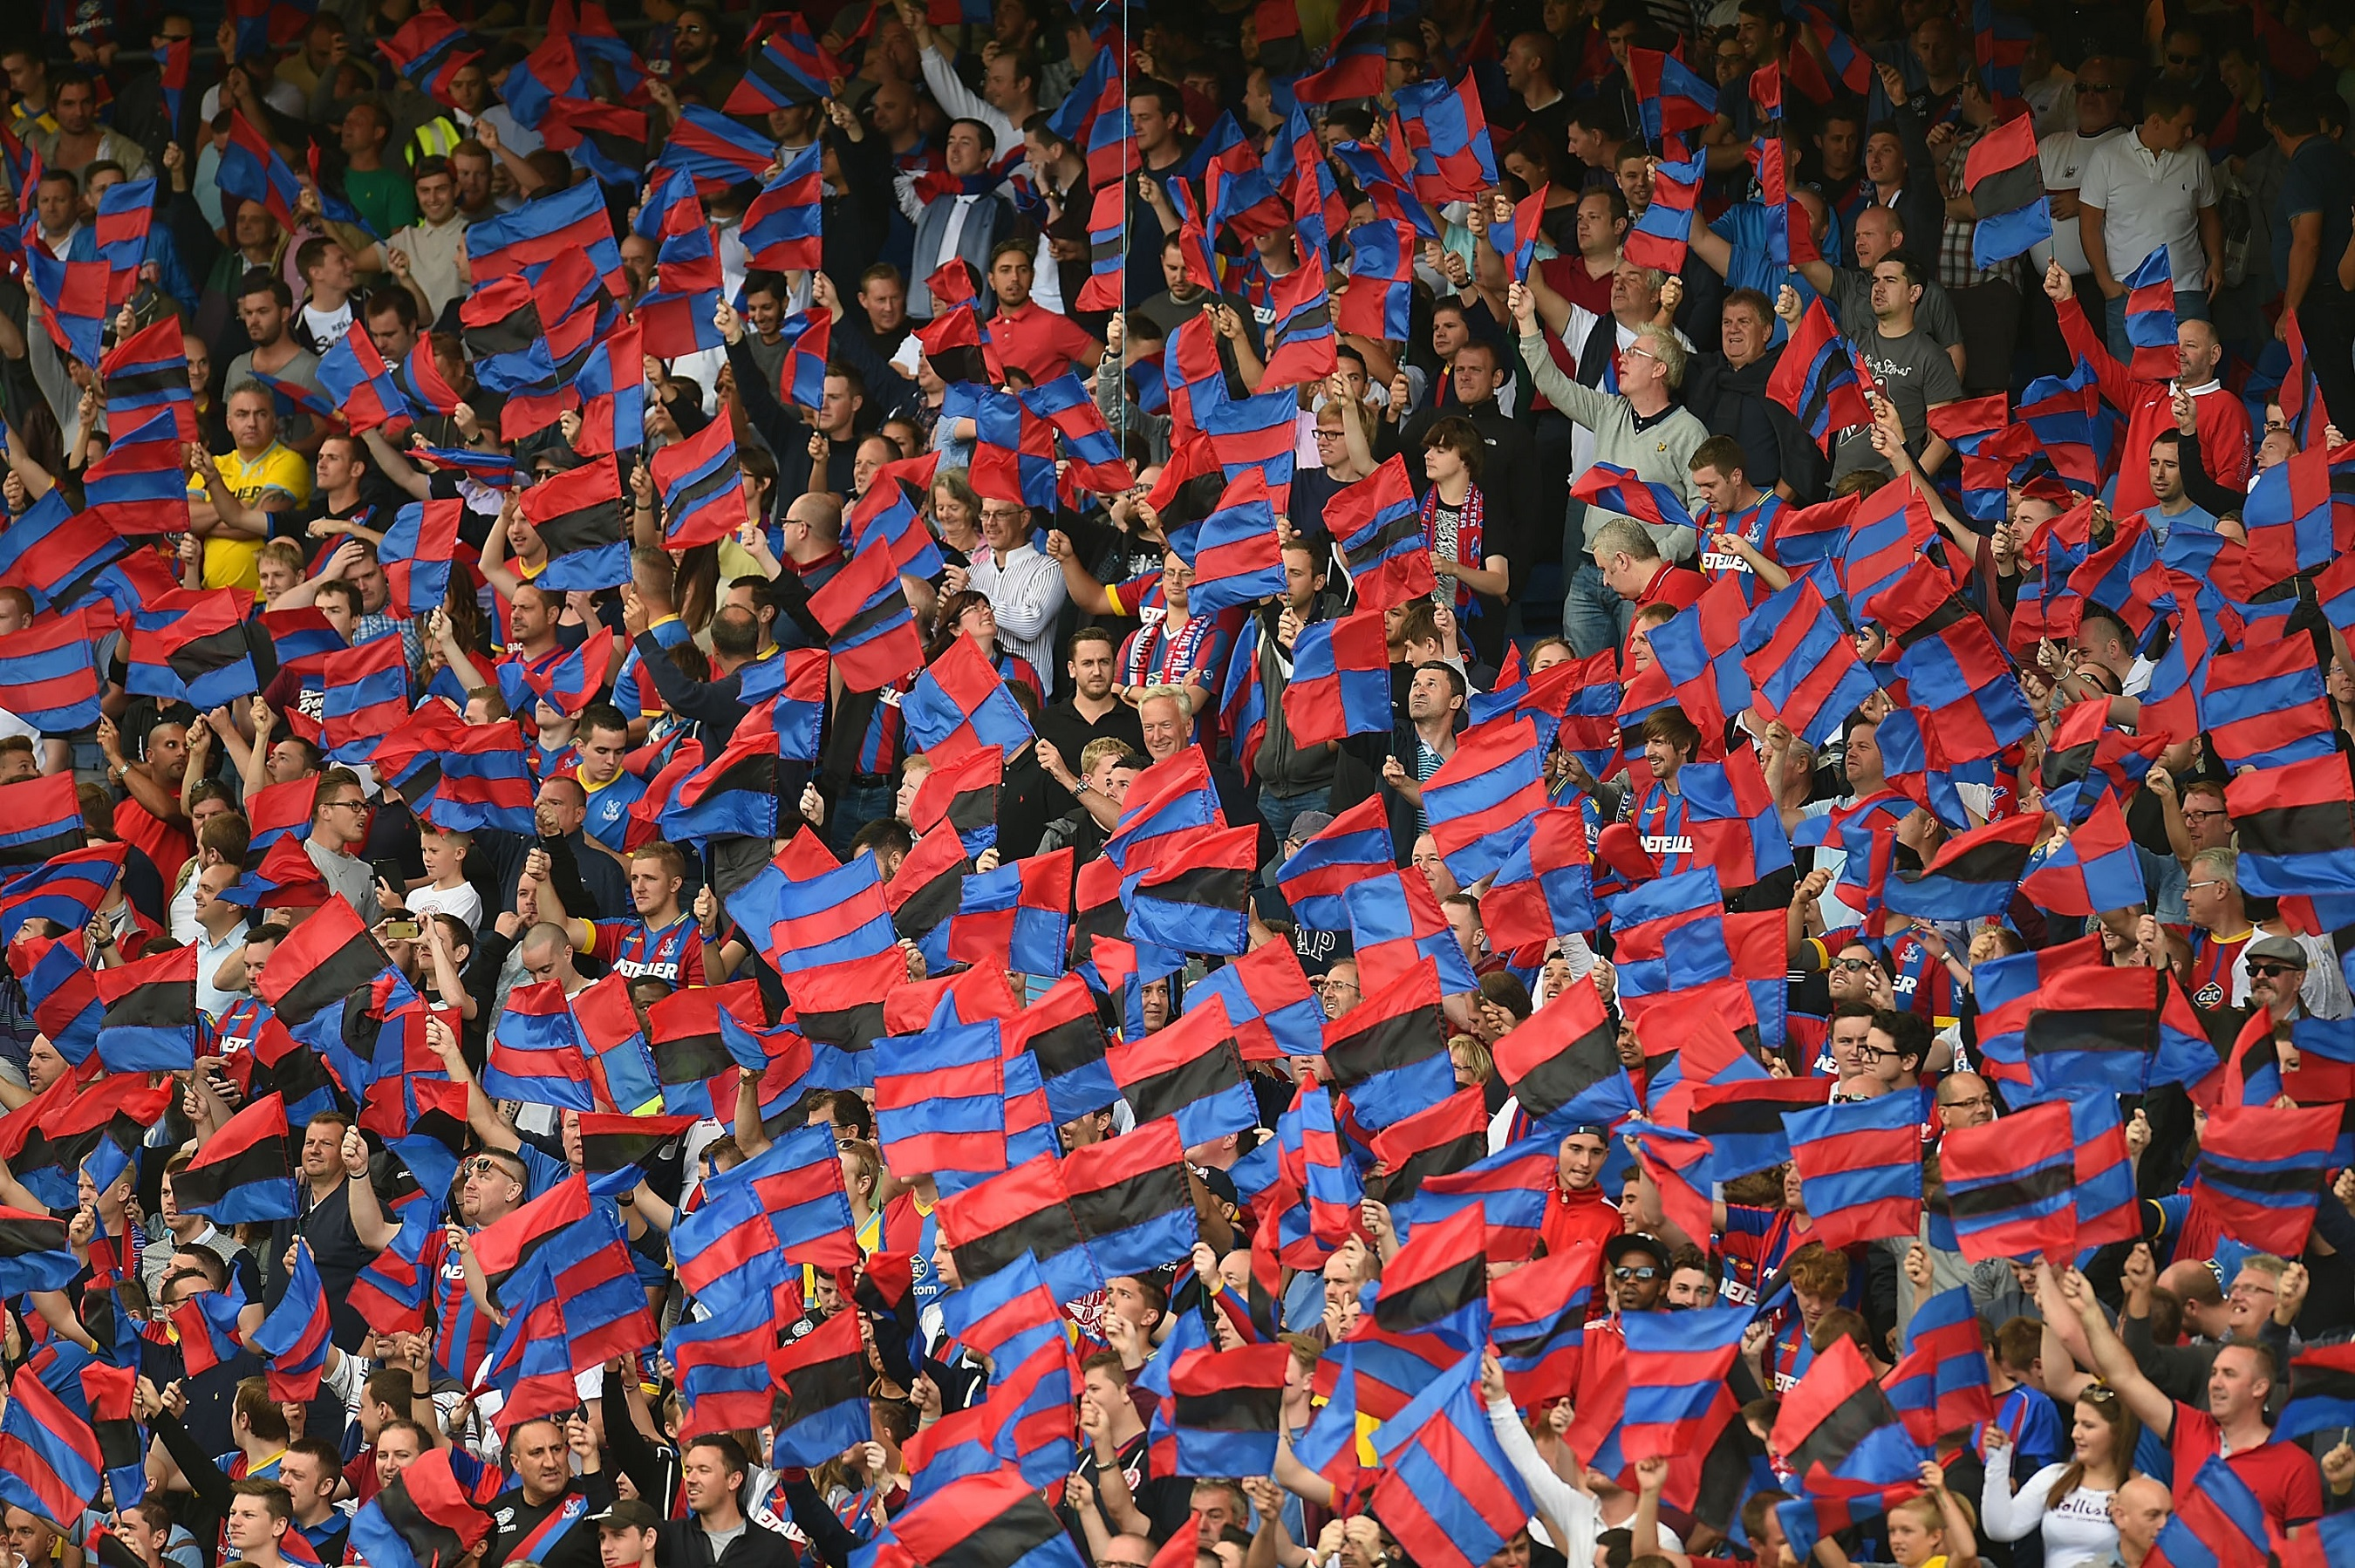 LONDON, ENGLAND - AUGUST 23: Crystal Palace fans wave flags during the Premiere League match between Crystal Palace and West Ham United at Selhurst Park on August 23, 2014 in London, England. (Photo by Tom Dulat/Getty Images)